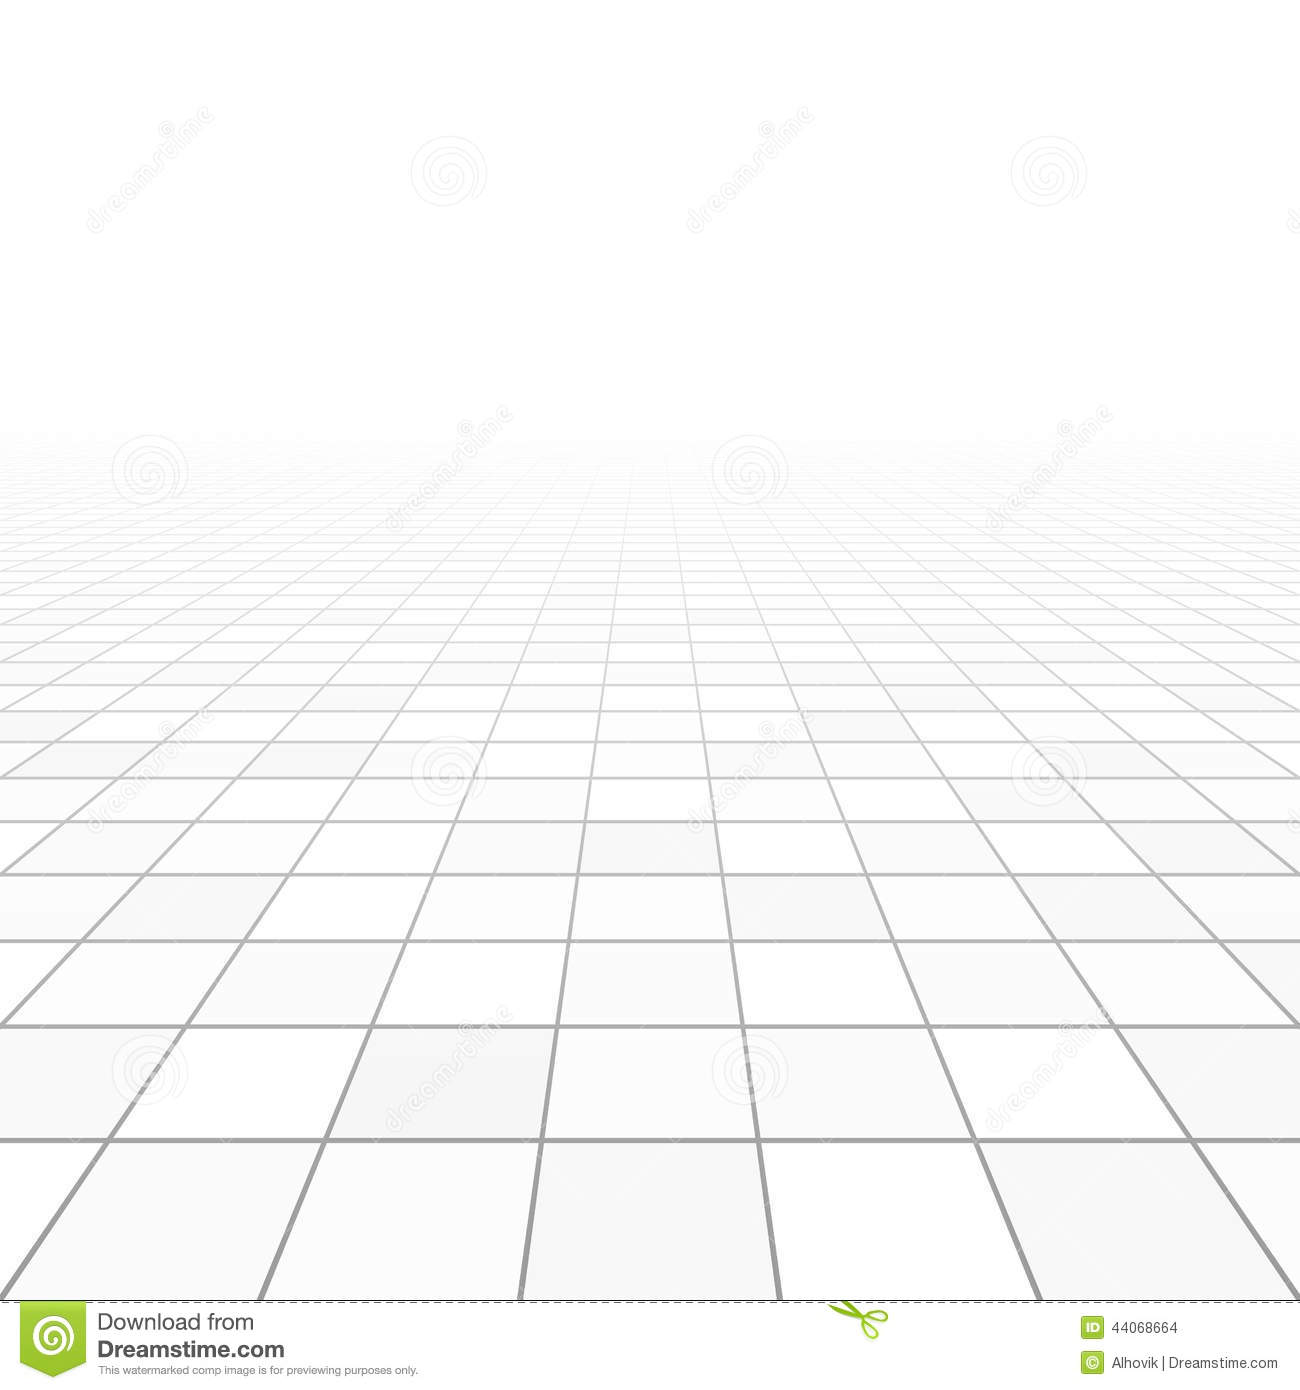 Floor tiles stock illustrations 13535 floor tiles stock floor tiles perspective illustration on white stock images dailygadgetfo Images